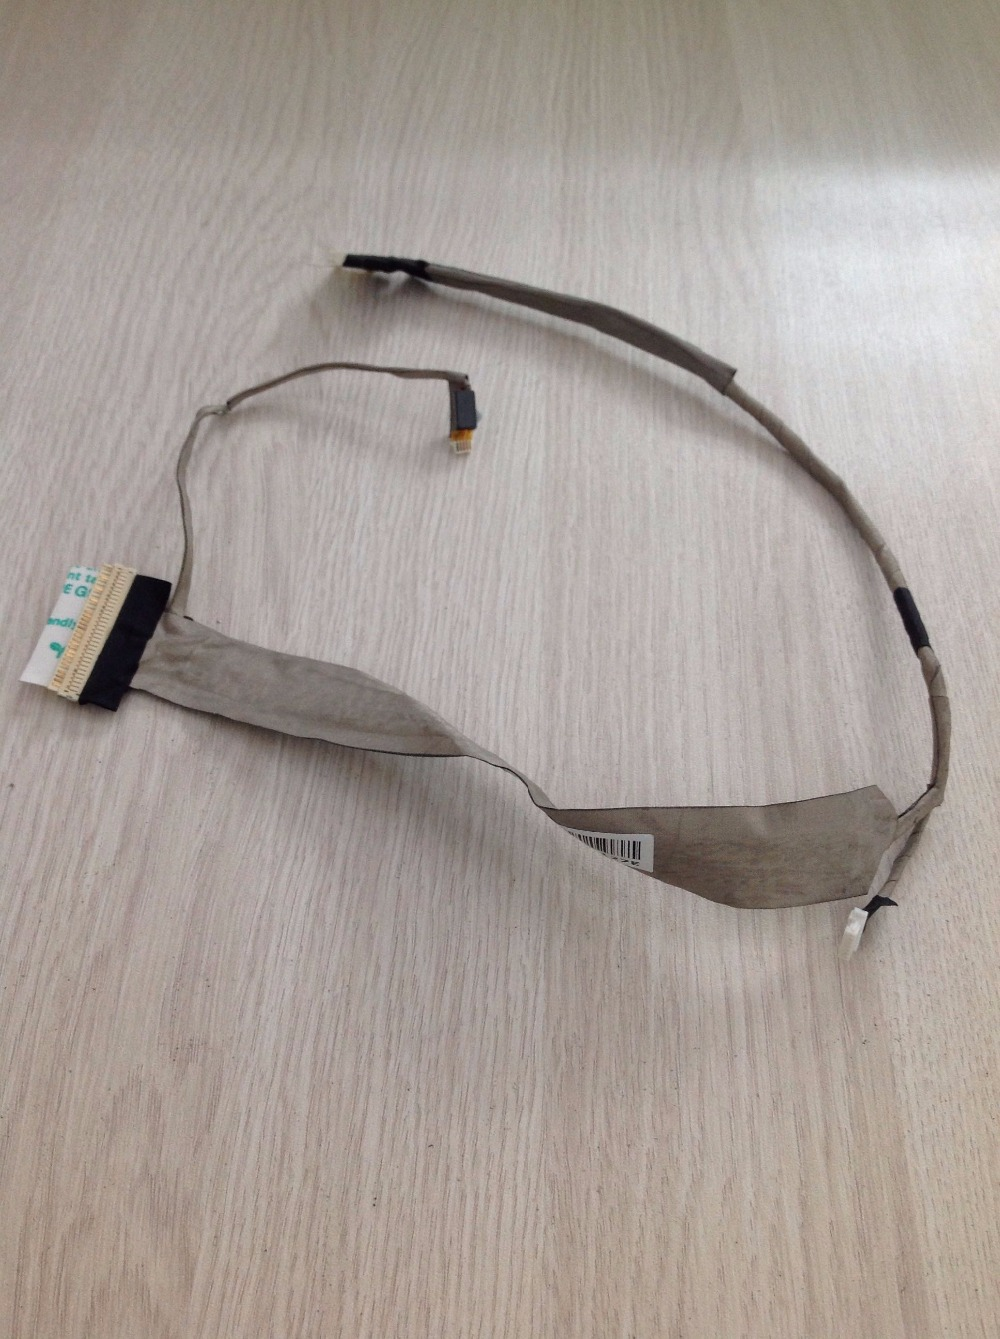 New LCD Video Flex Screen Data Cable Wire Line For Toshiba Satellite A500 A505D A505 Laptop DC02000UD00 KSKAE